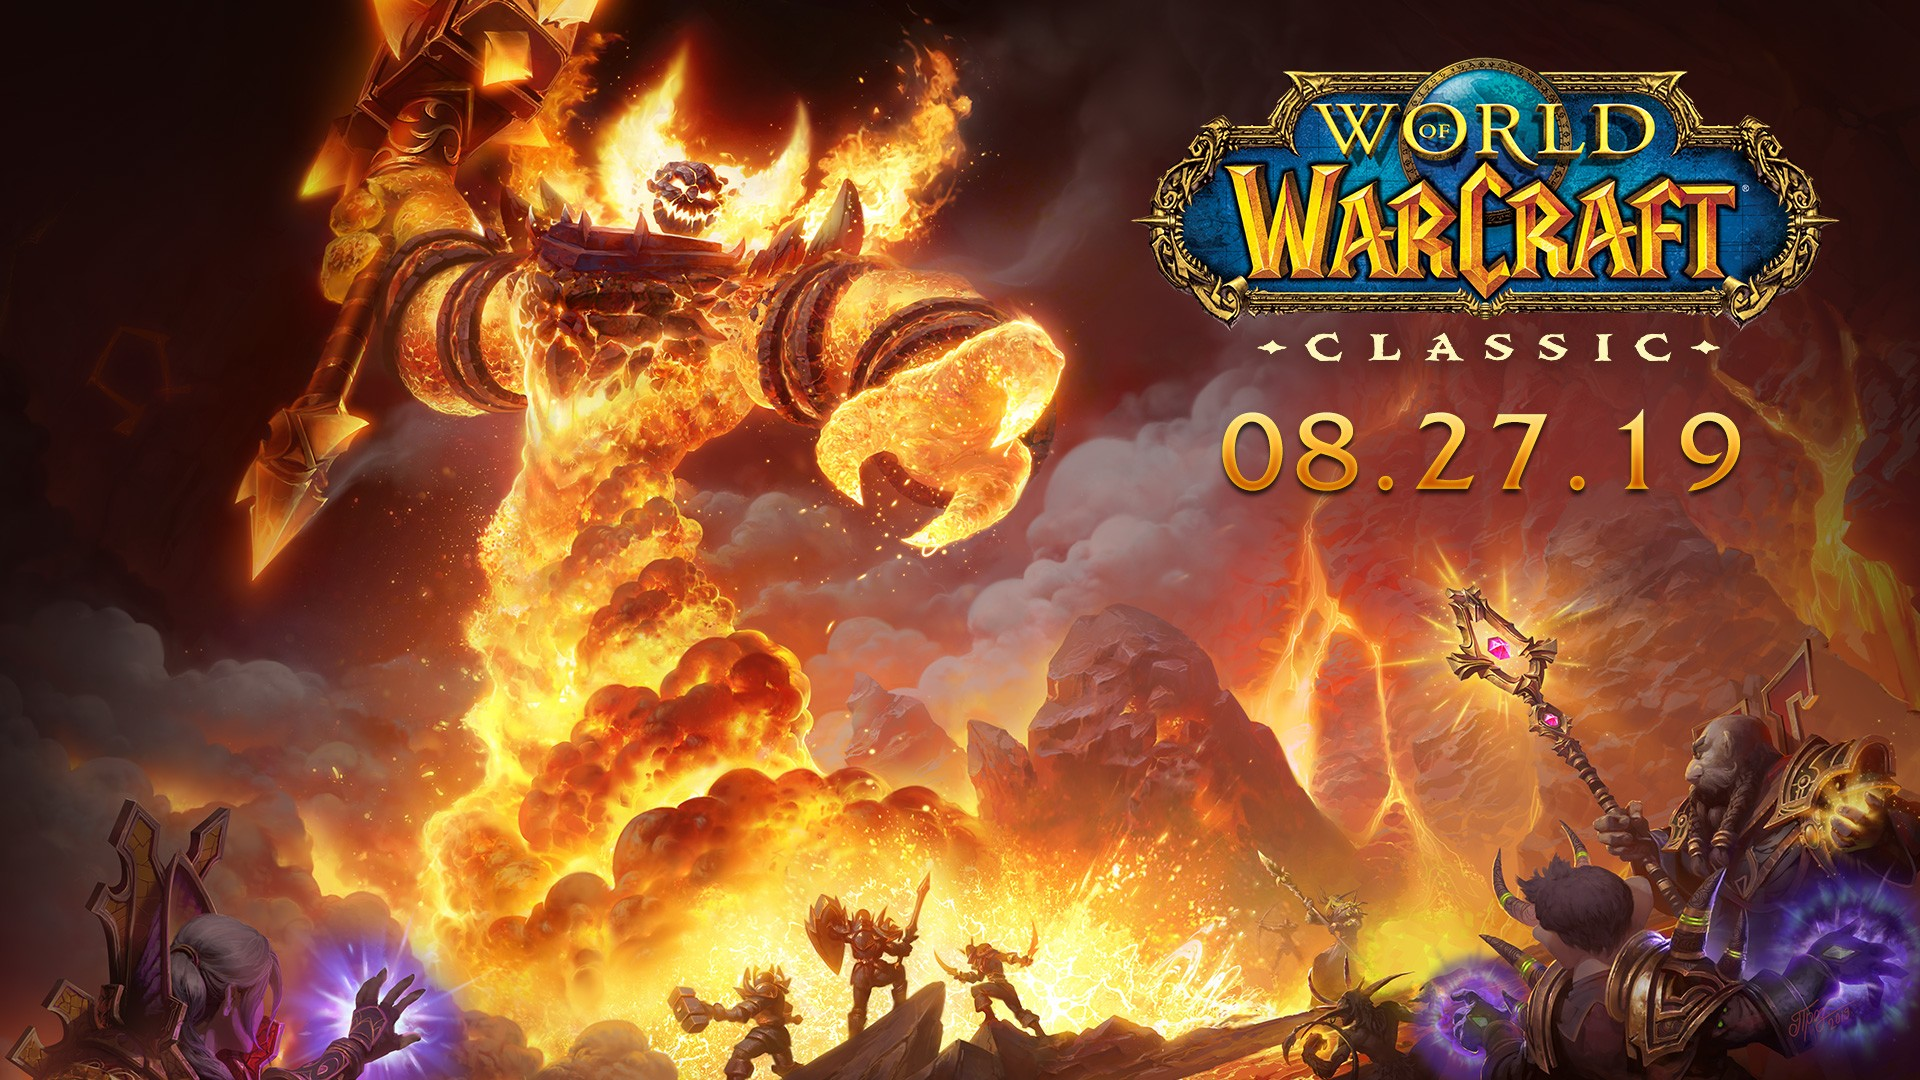 To be a success, all World of Warcraft: Classic has to do is